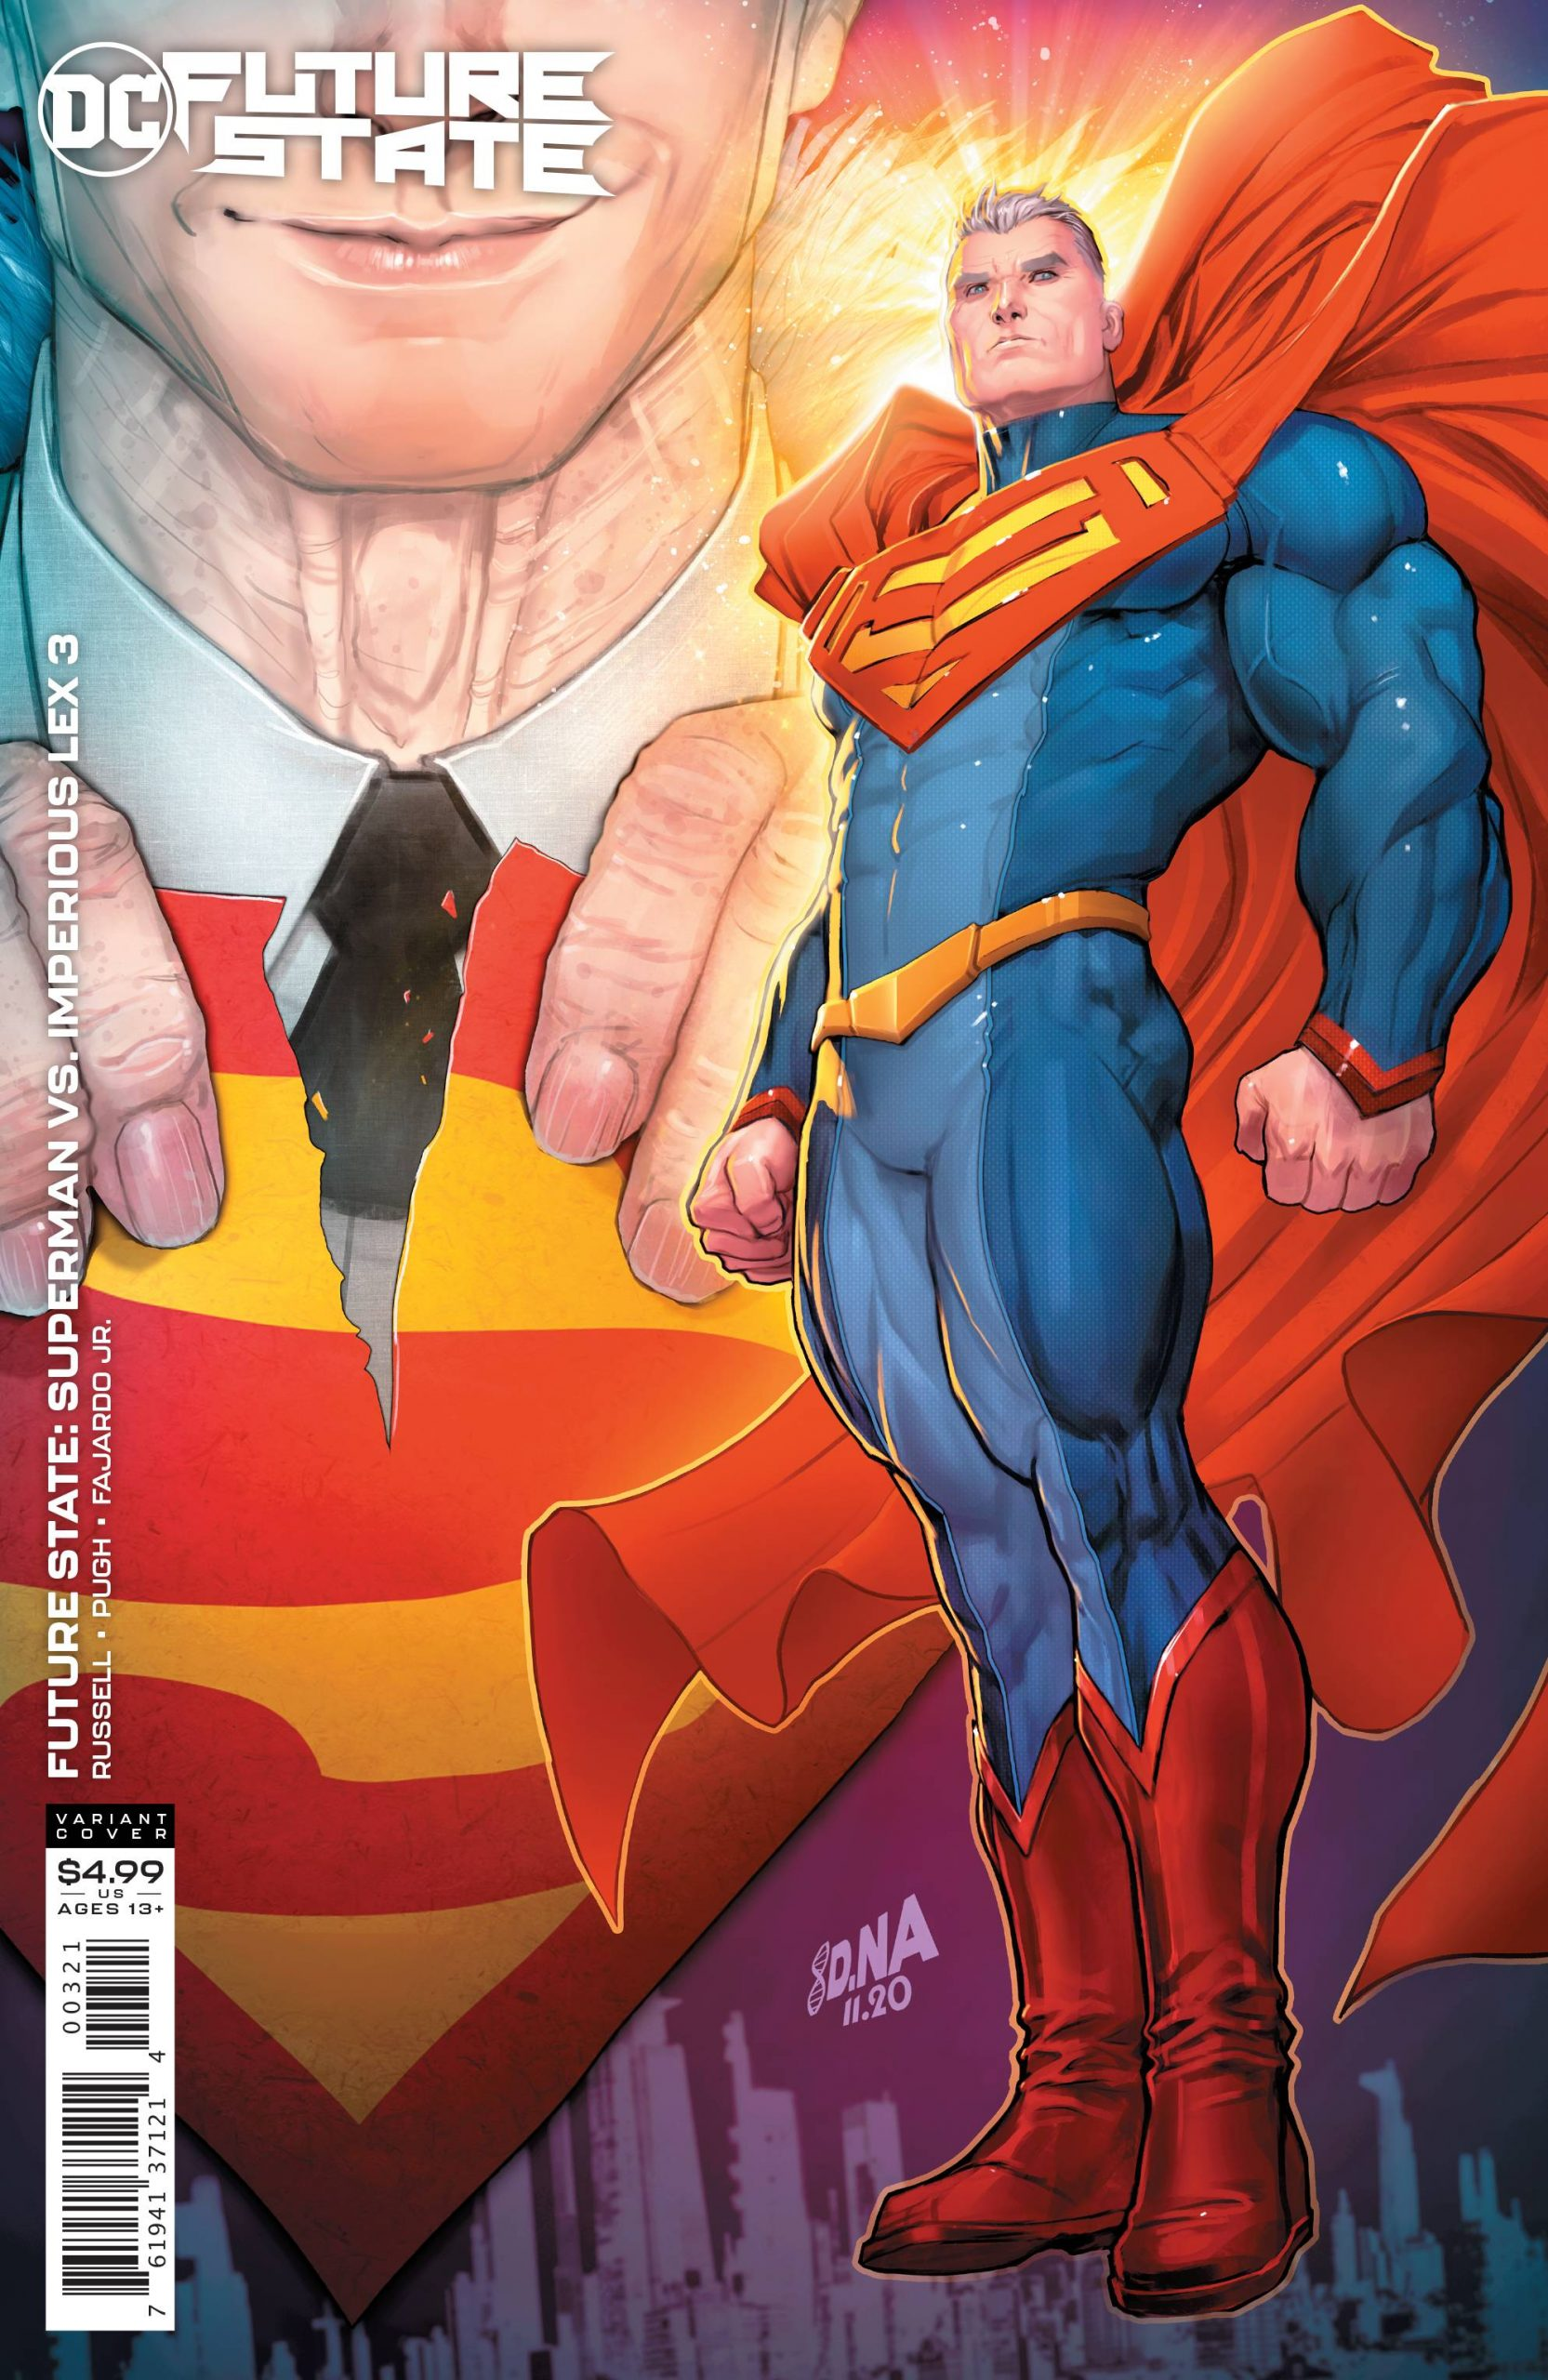 DC-Future-State-Superman-vs.-Imperious-Lex-3-spoilers-0-2-scaled-1 DC-Future-State-Superman-vs.-Imperious-Lex-3-spoilers-0-2-scaled-1